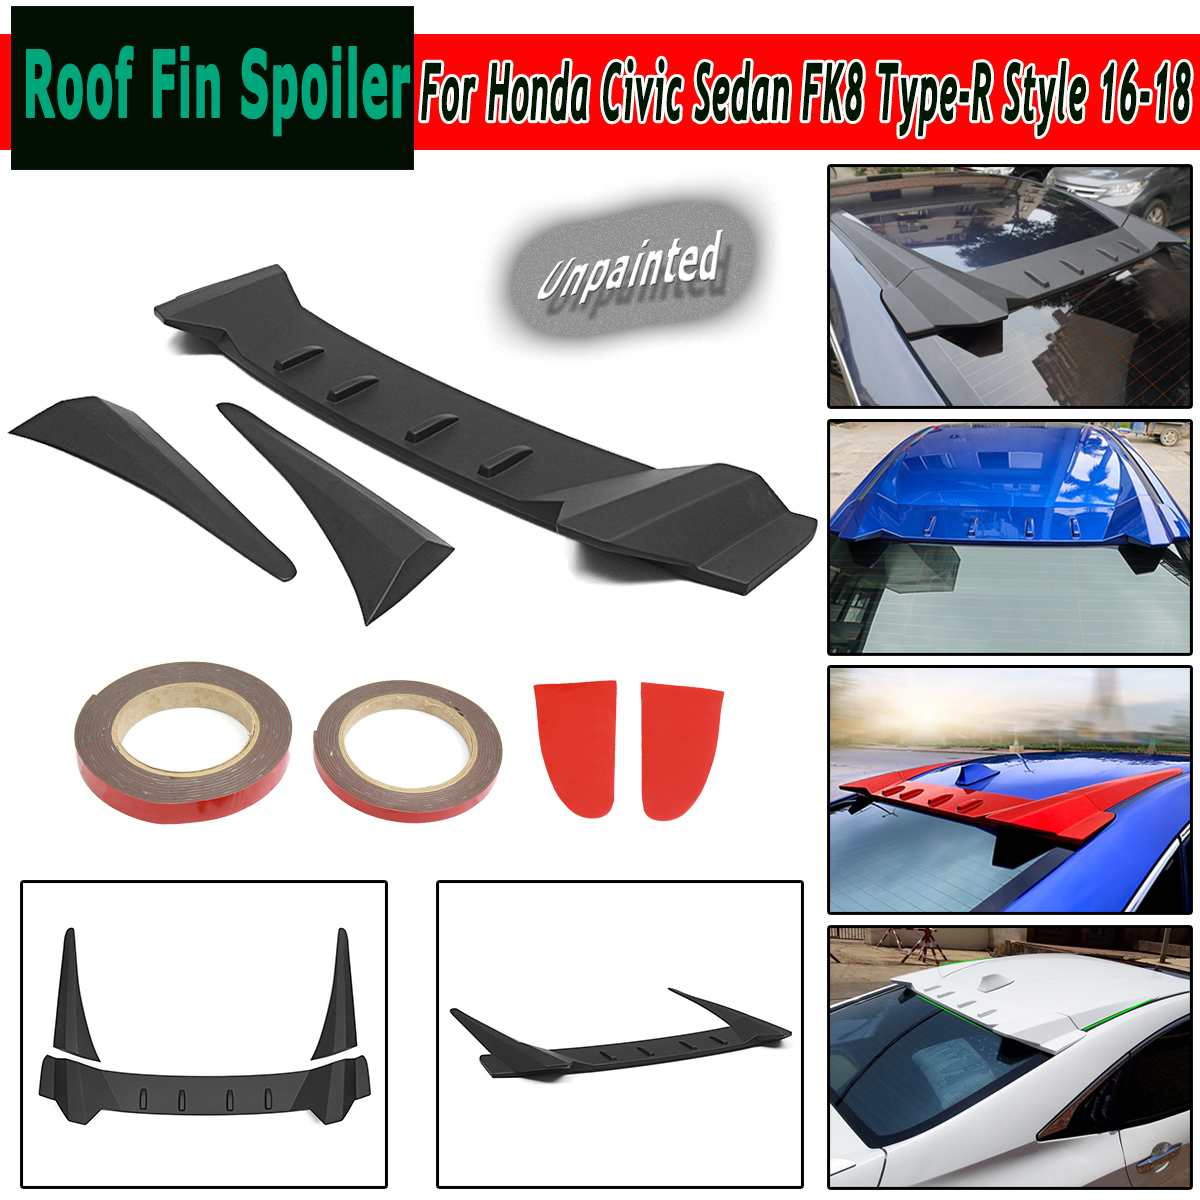 ABS Roof Fin Rear Roof Lip Spoiler Wing For Honda for Civic Sedan FK8 Type-R Style 16-18 Unpainted BlackABS Roof Fin Rear Roof Lip Spoiler Wing For Honda for Civic Sedan FK8 Type-R Style 16-18 Unpainted Black